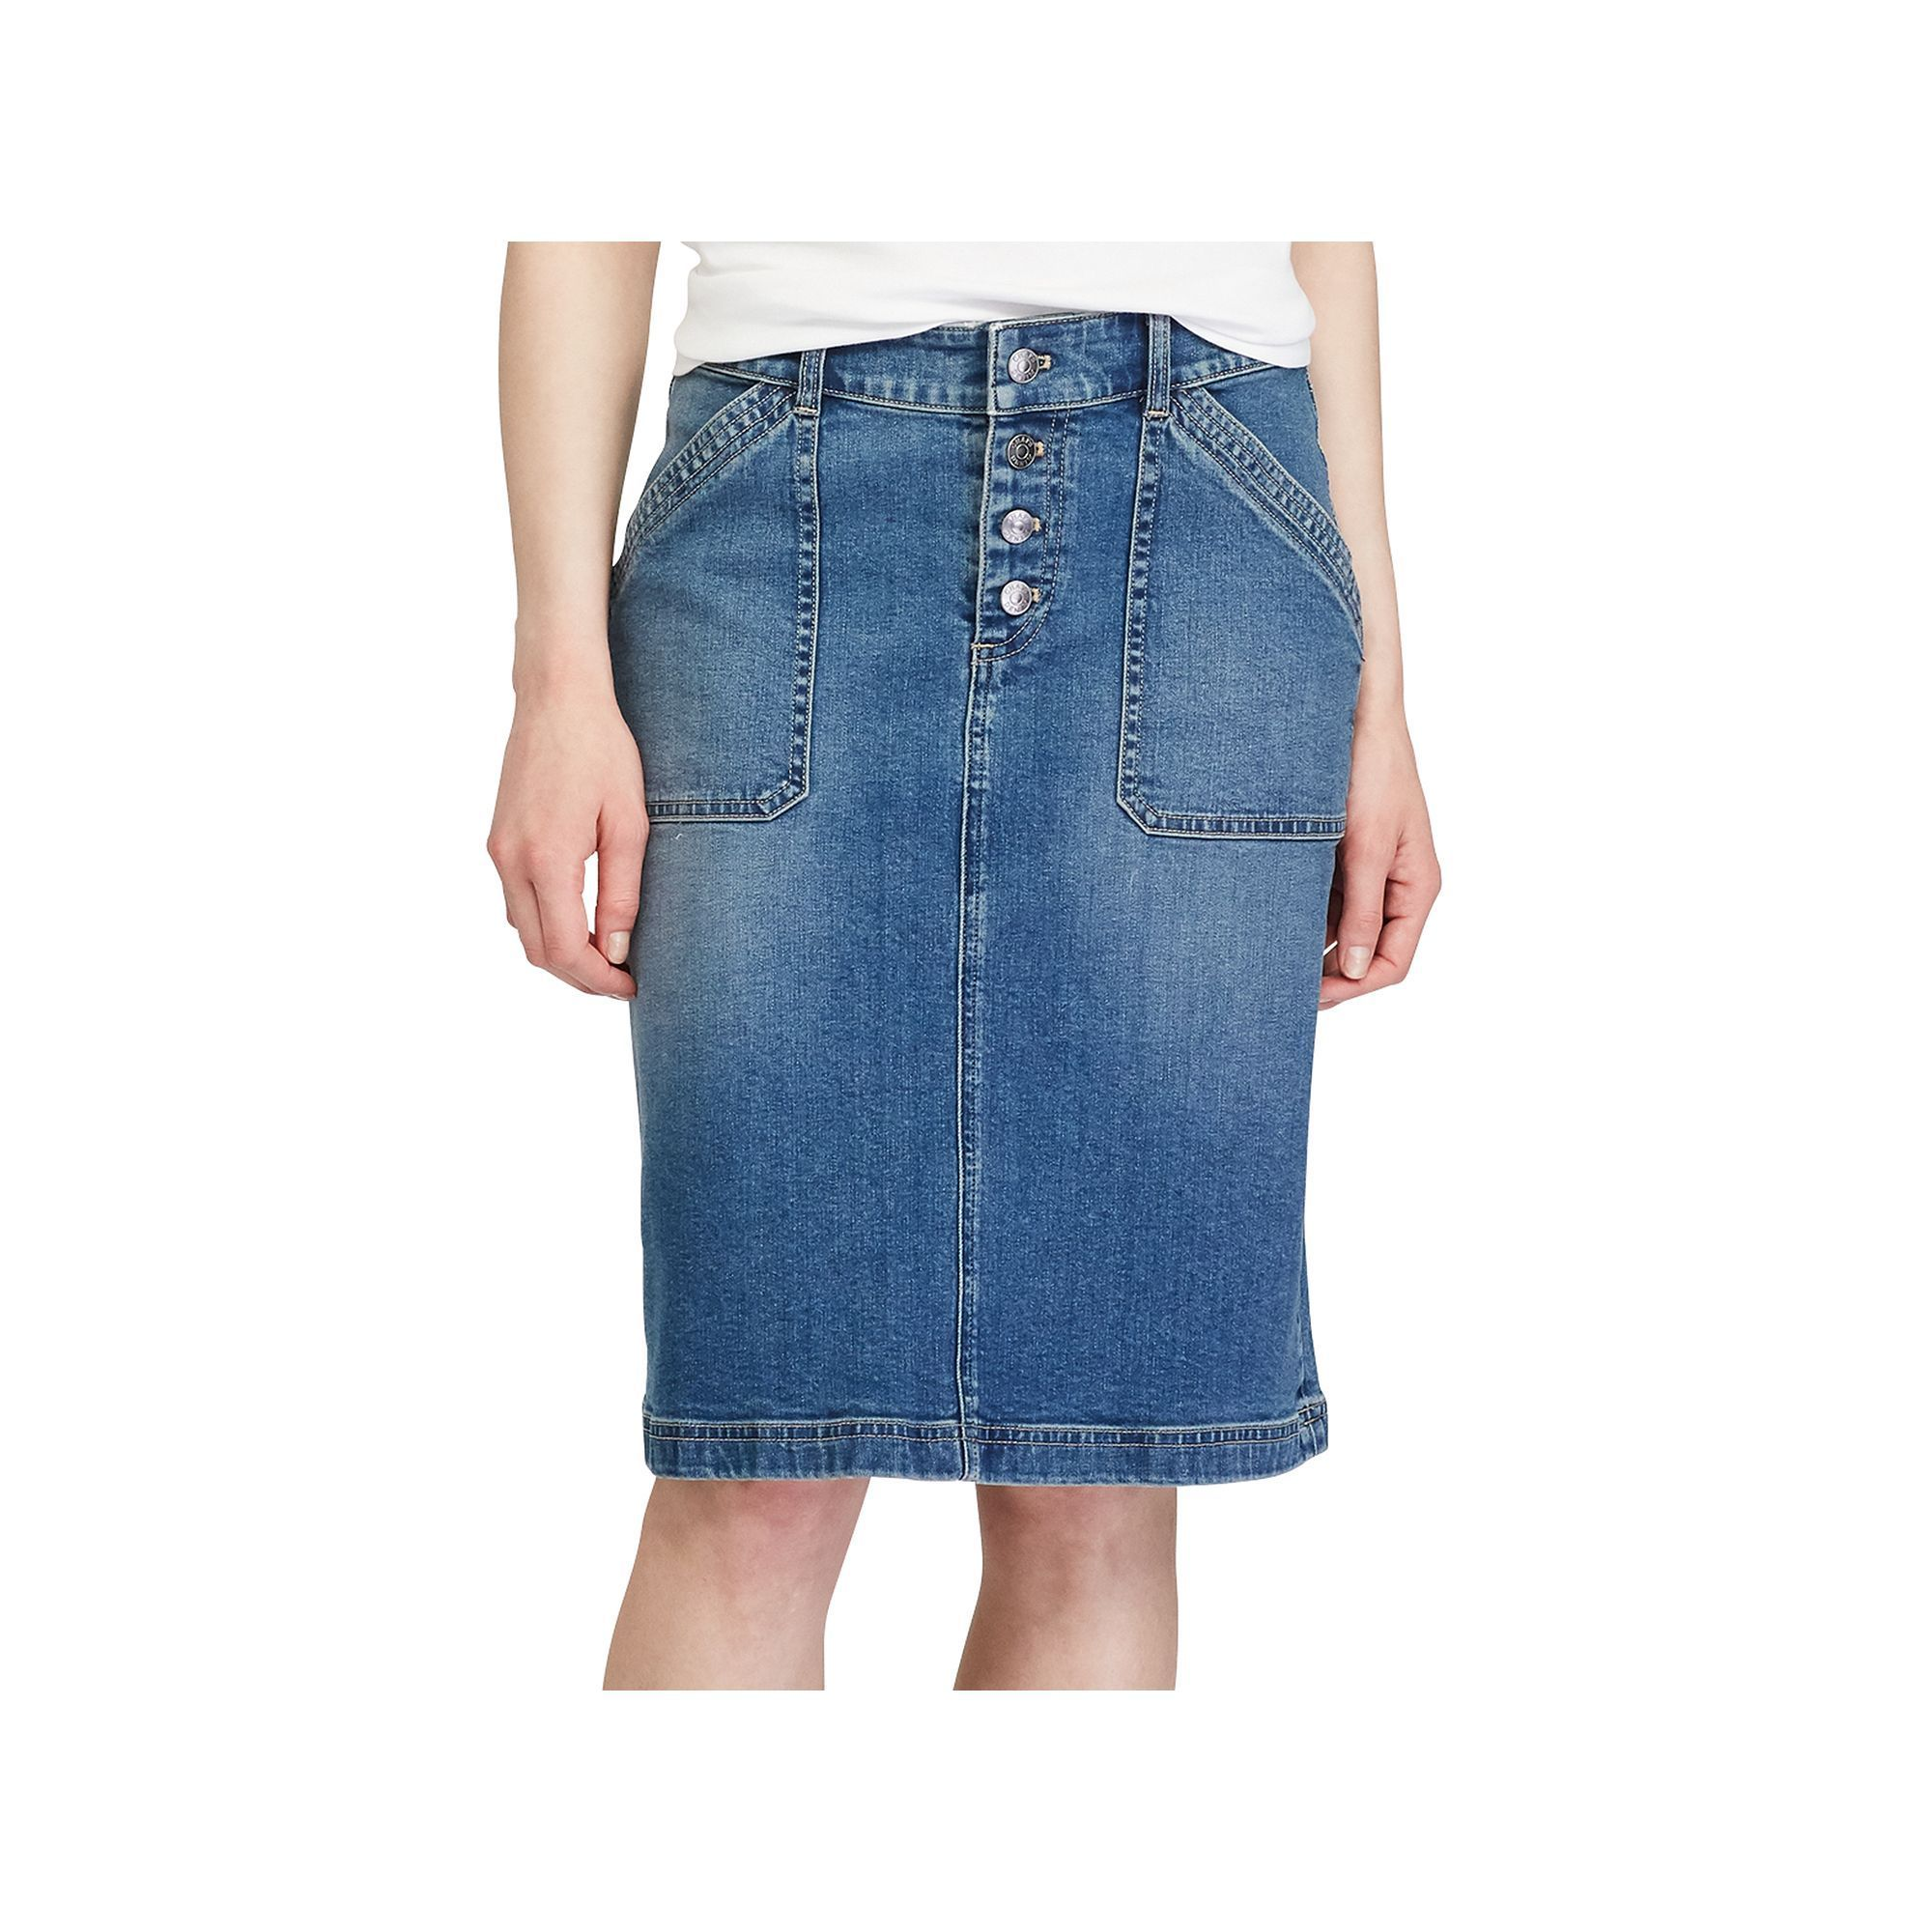 0750af9654 Women's Chaps Stretch Jean Skirt, Size: 16, Blue | Products | Jean ...